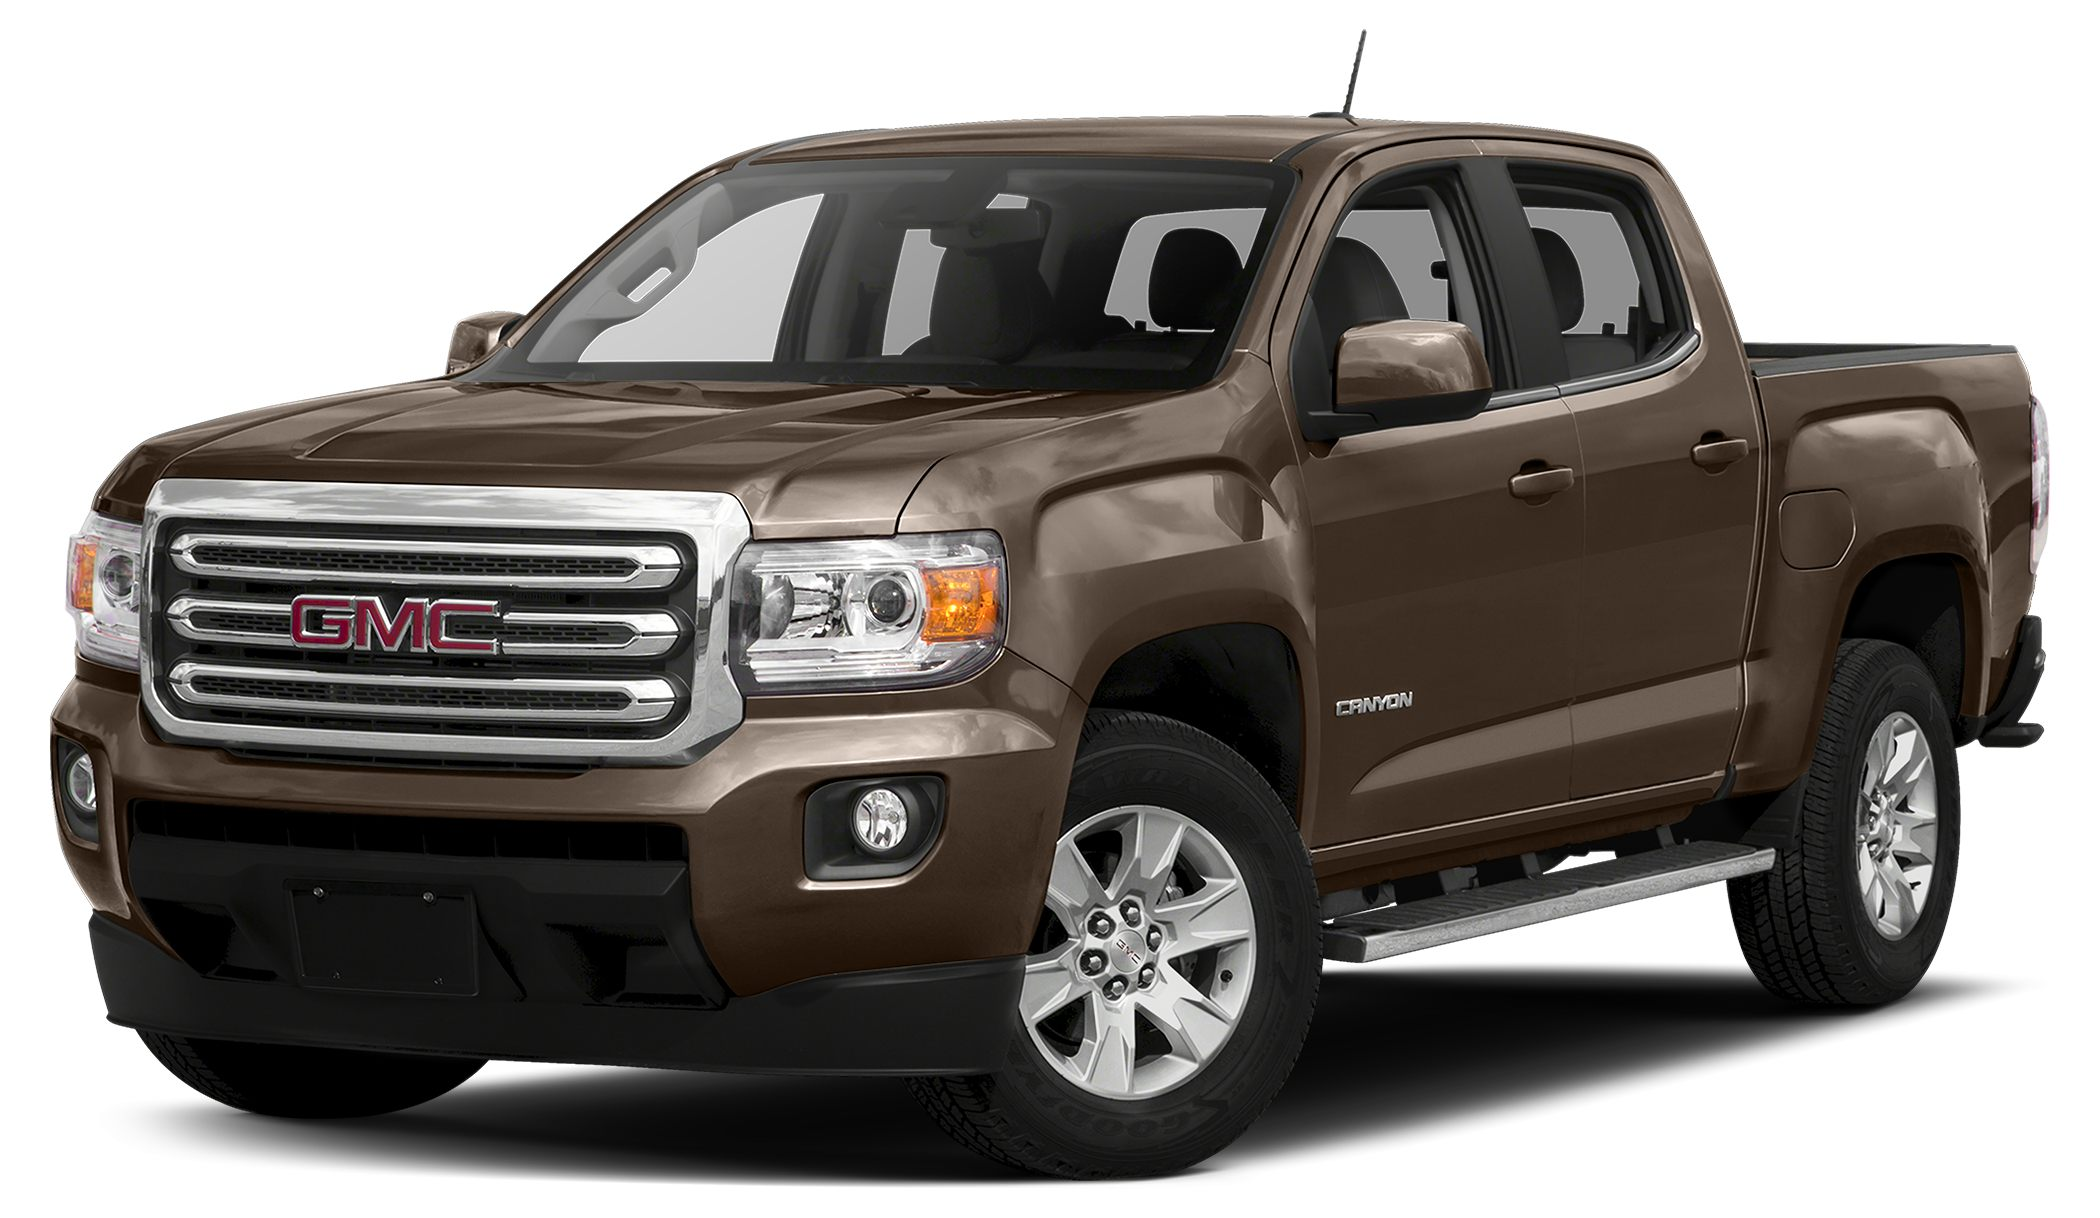 2016 GMC Canyon SLE The GMC Canyon will redefine the small truck category with segment-leading fea